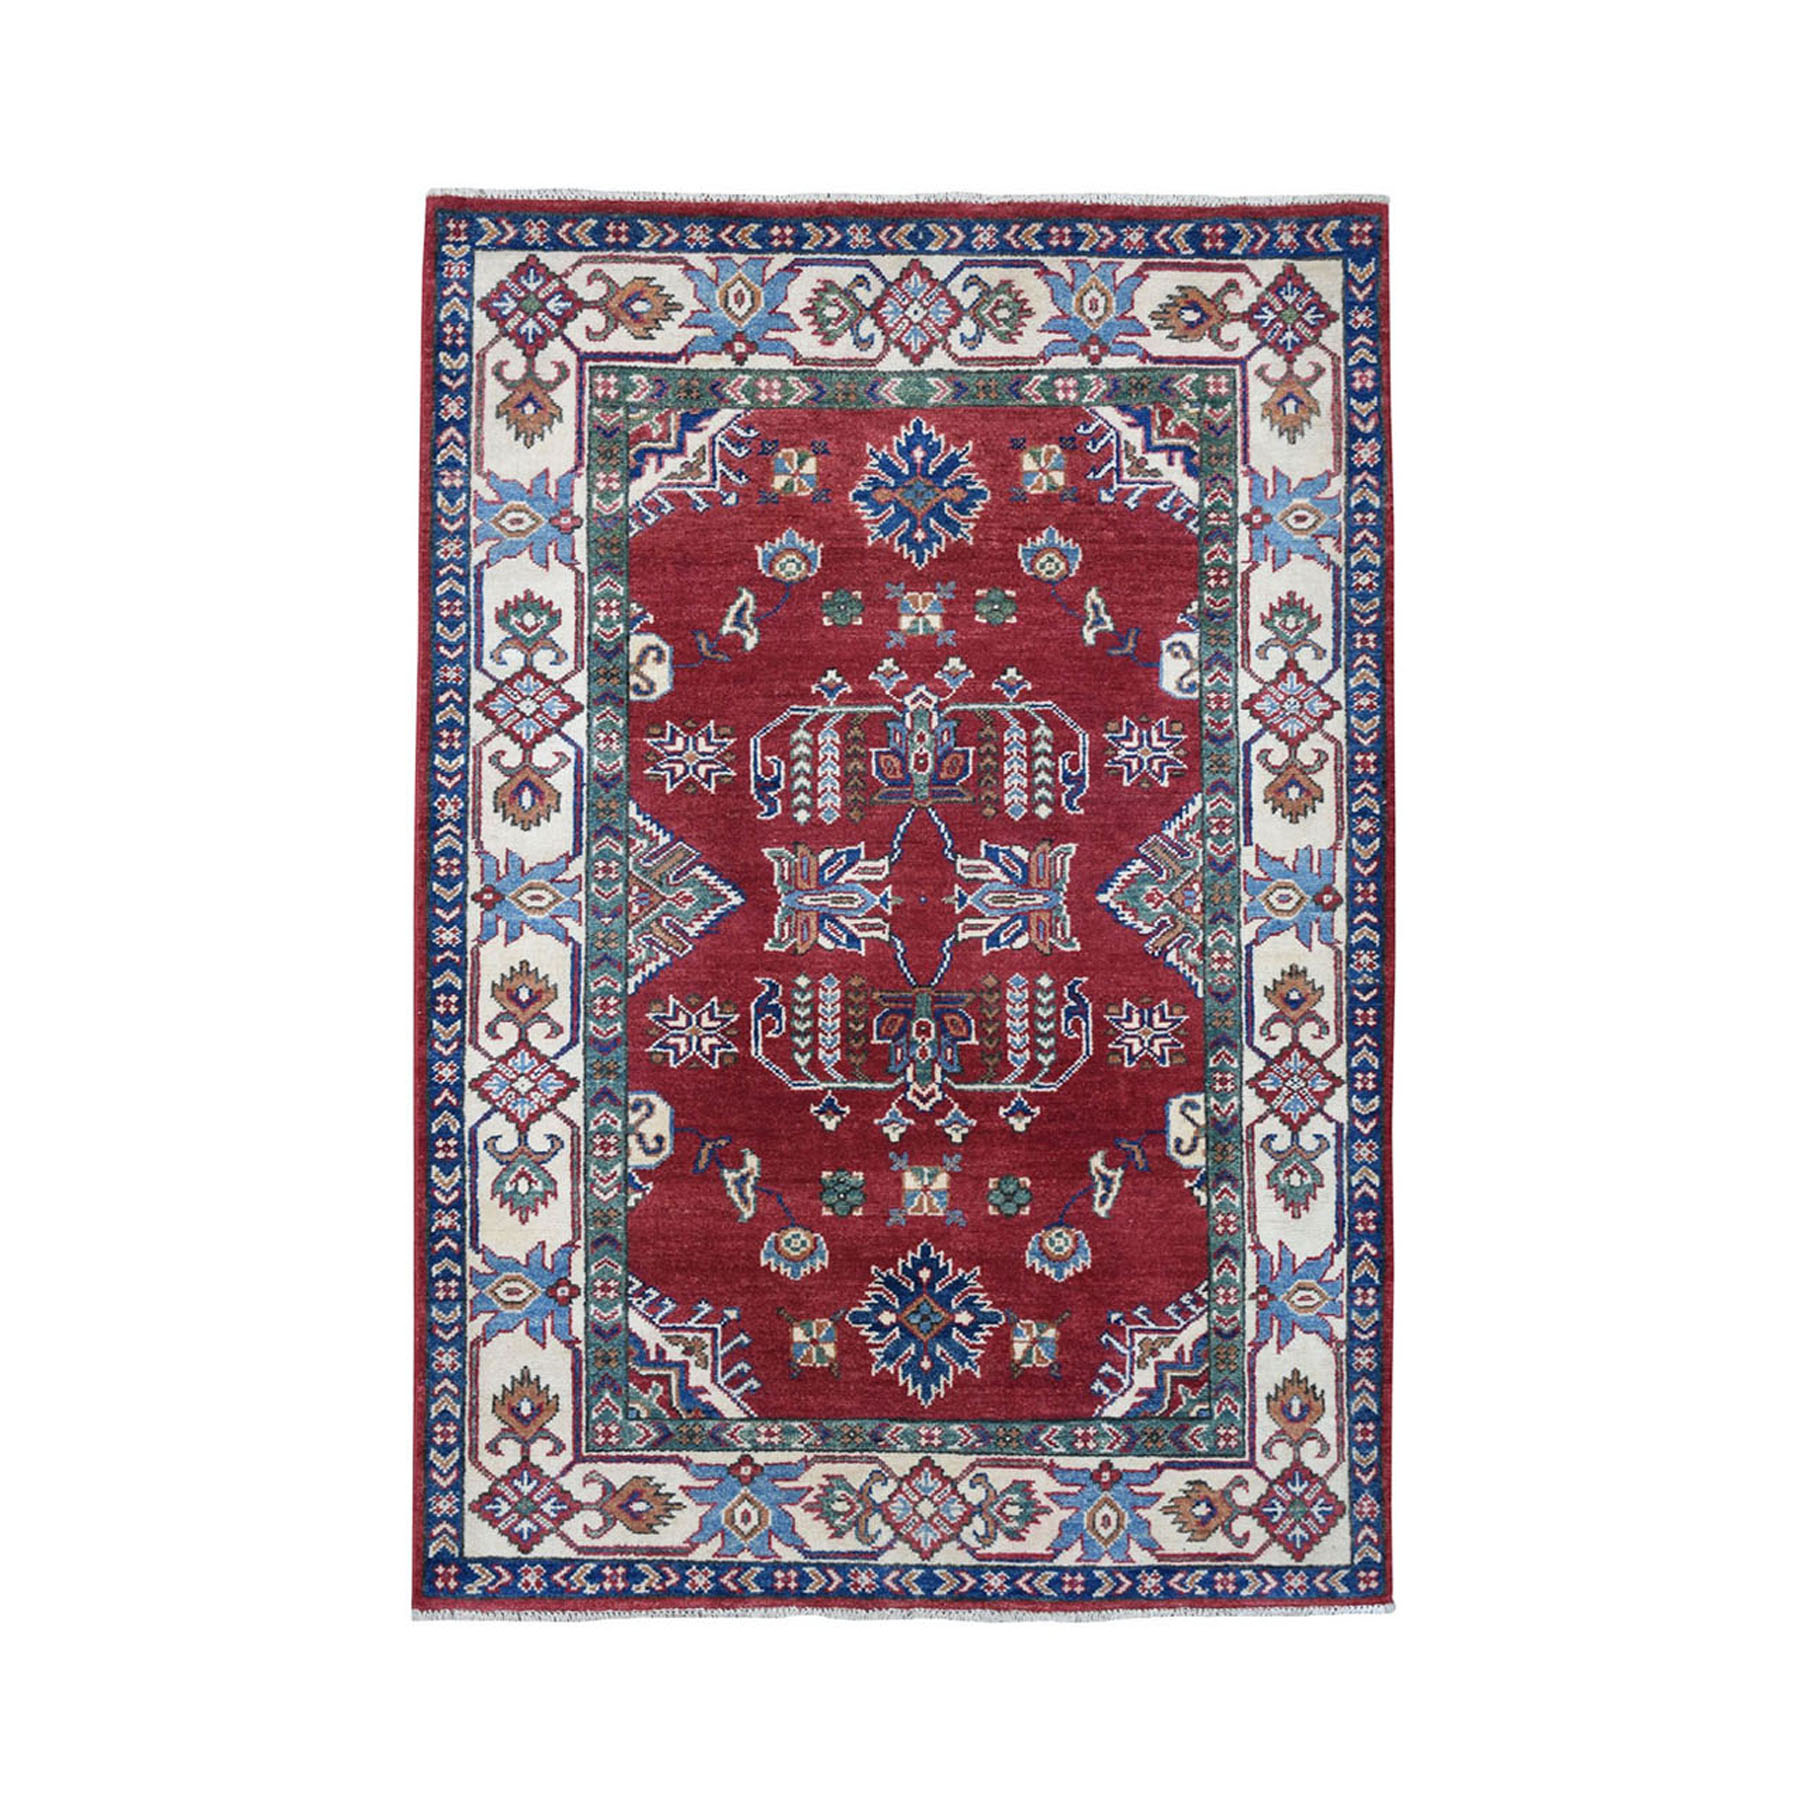 4'X6' Red Geometric Design Kazak Pure Wool Hand-Knotted Oriental Rug moae0697